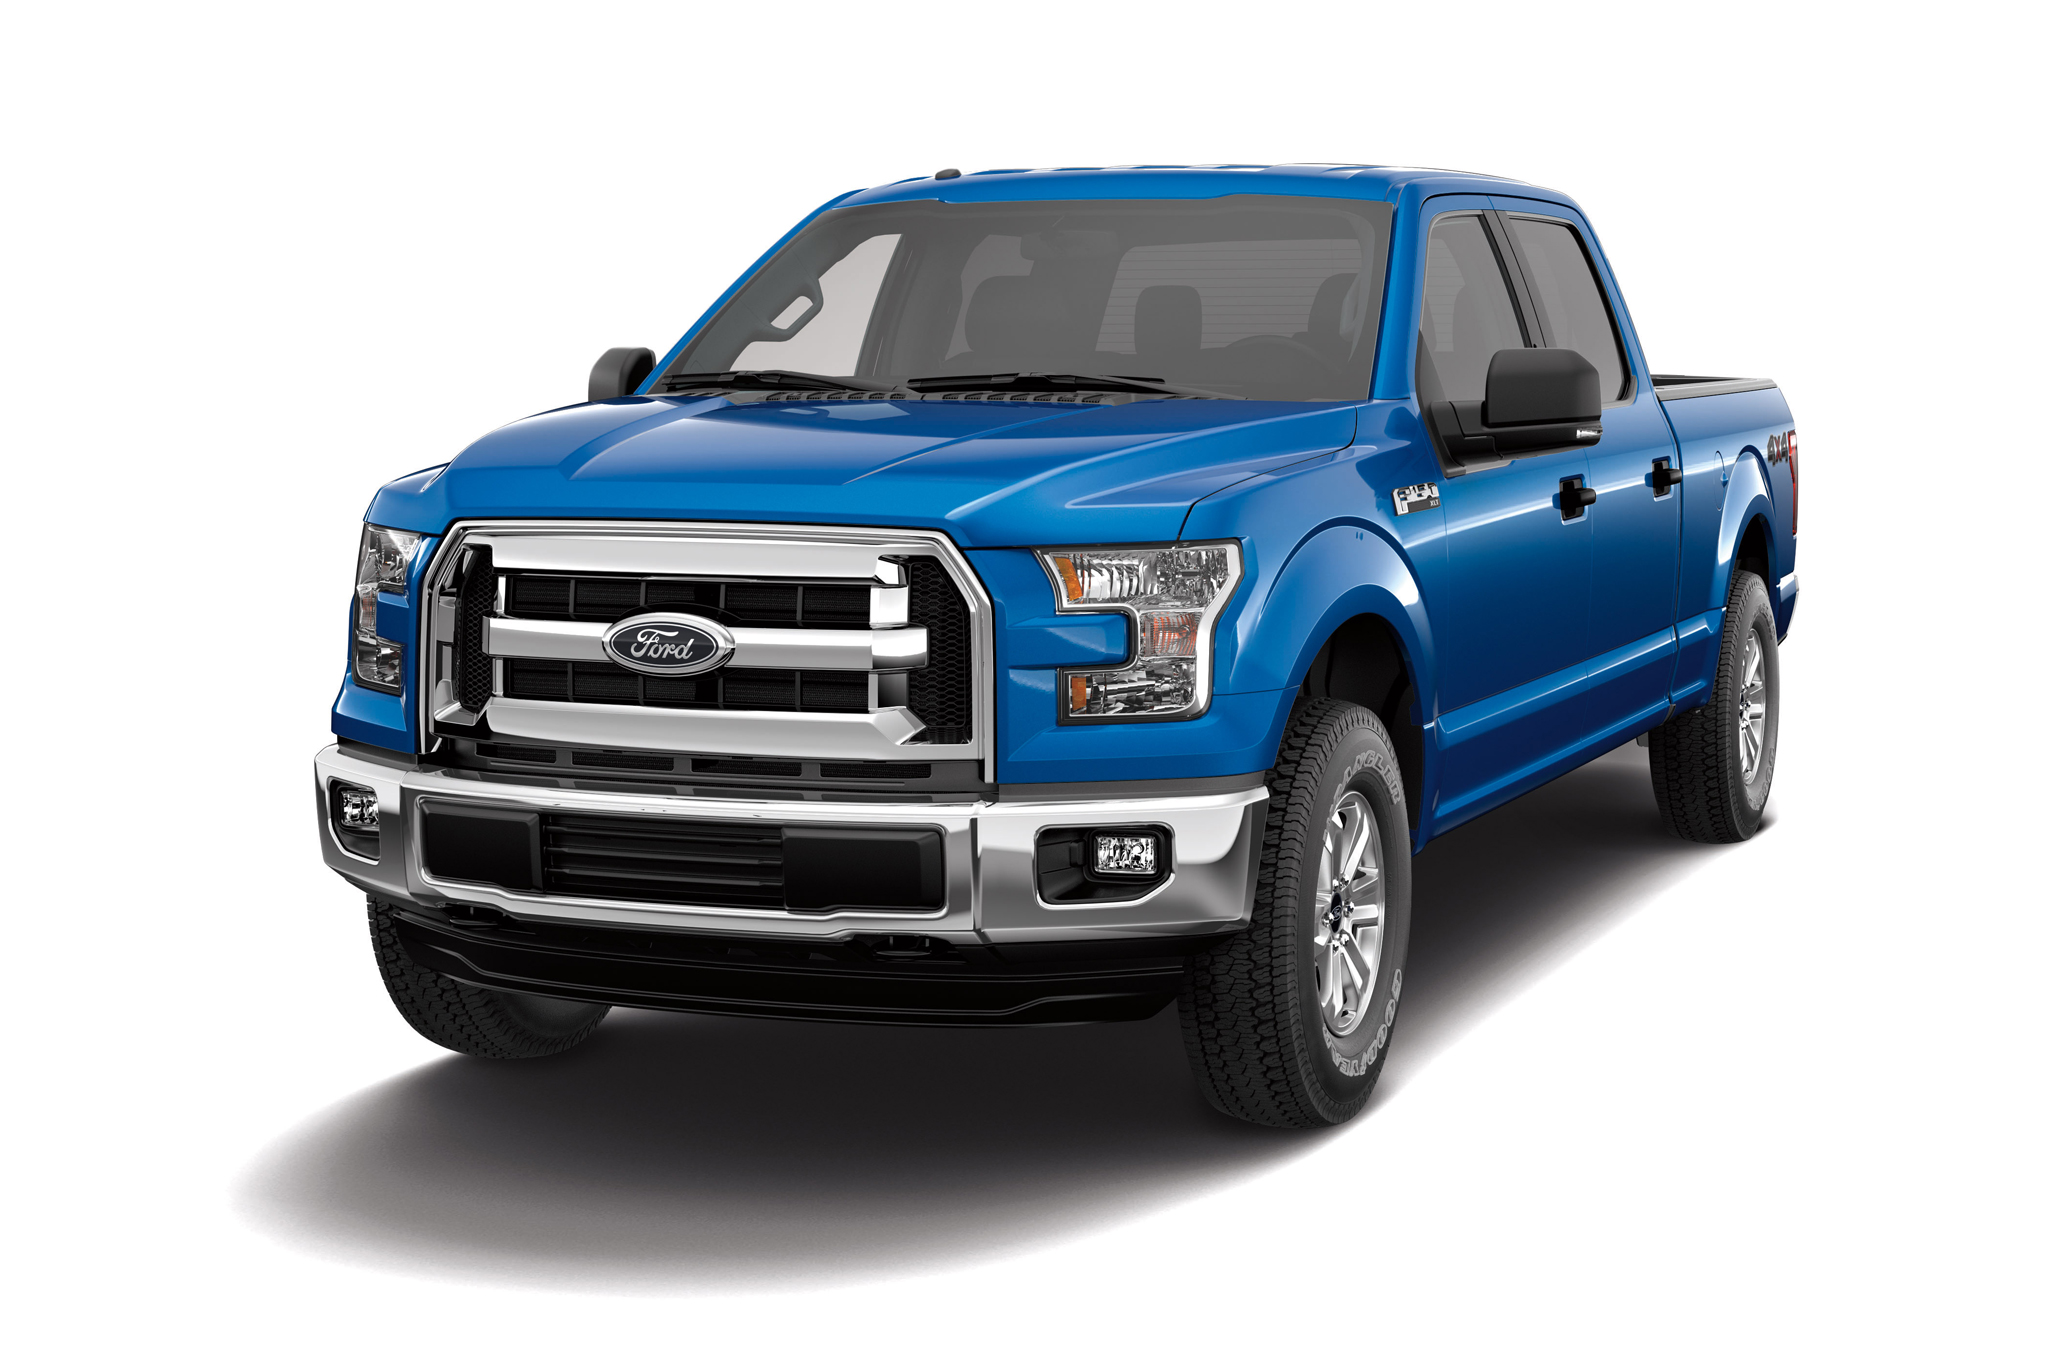 Ford xlt photo - 5